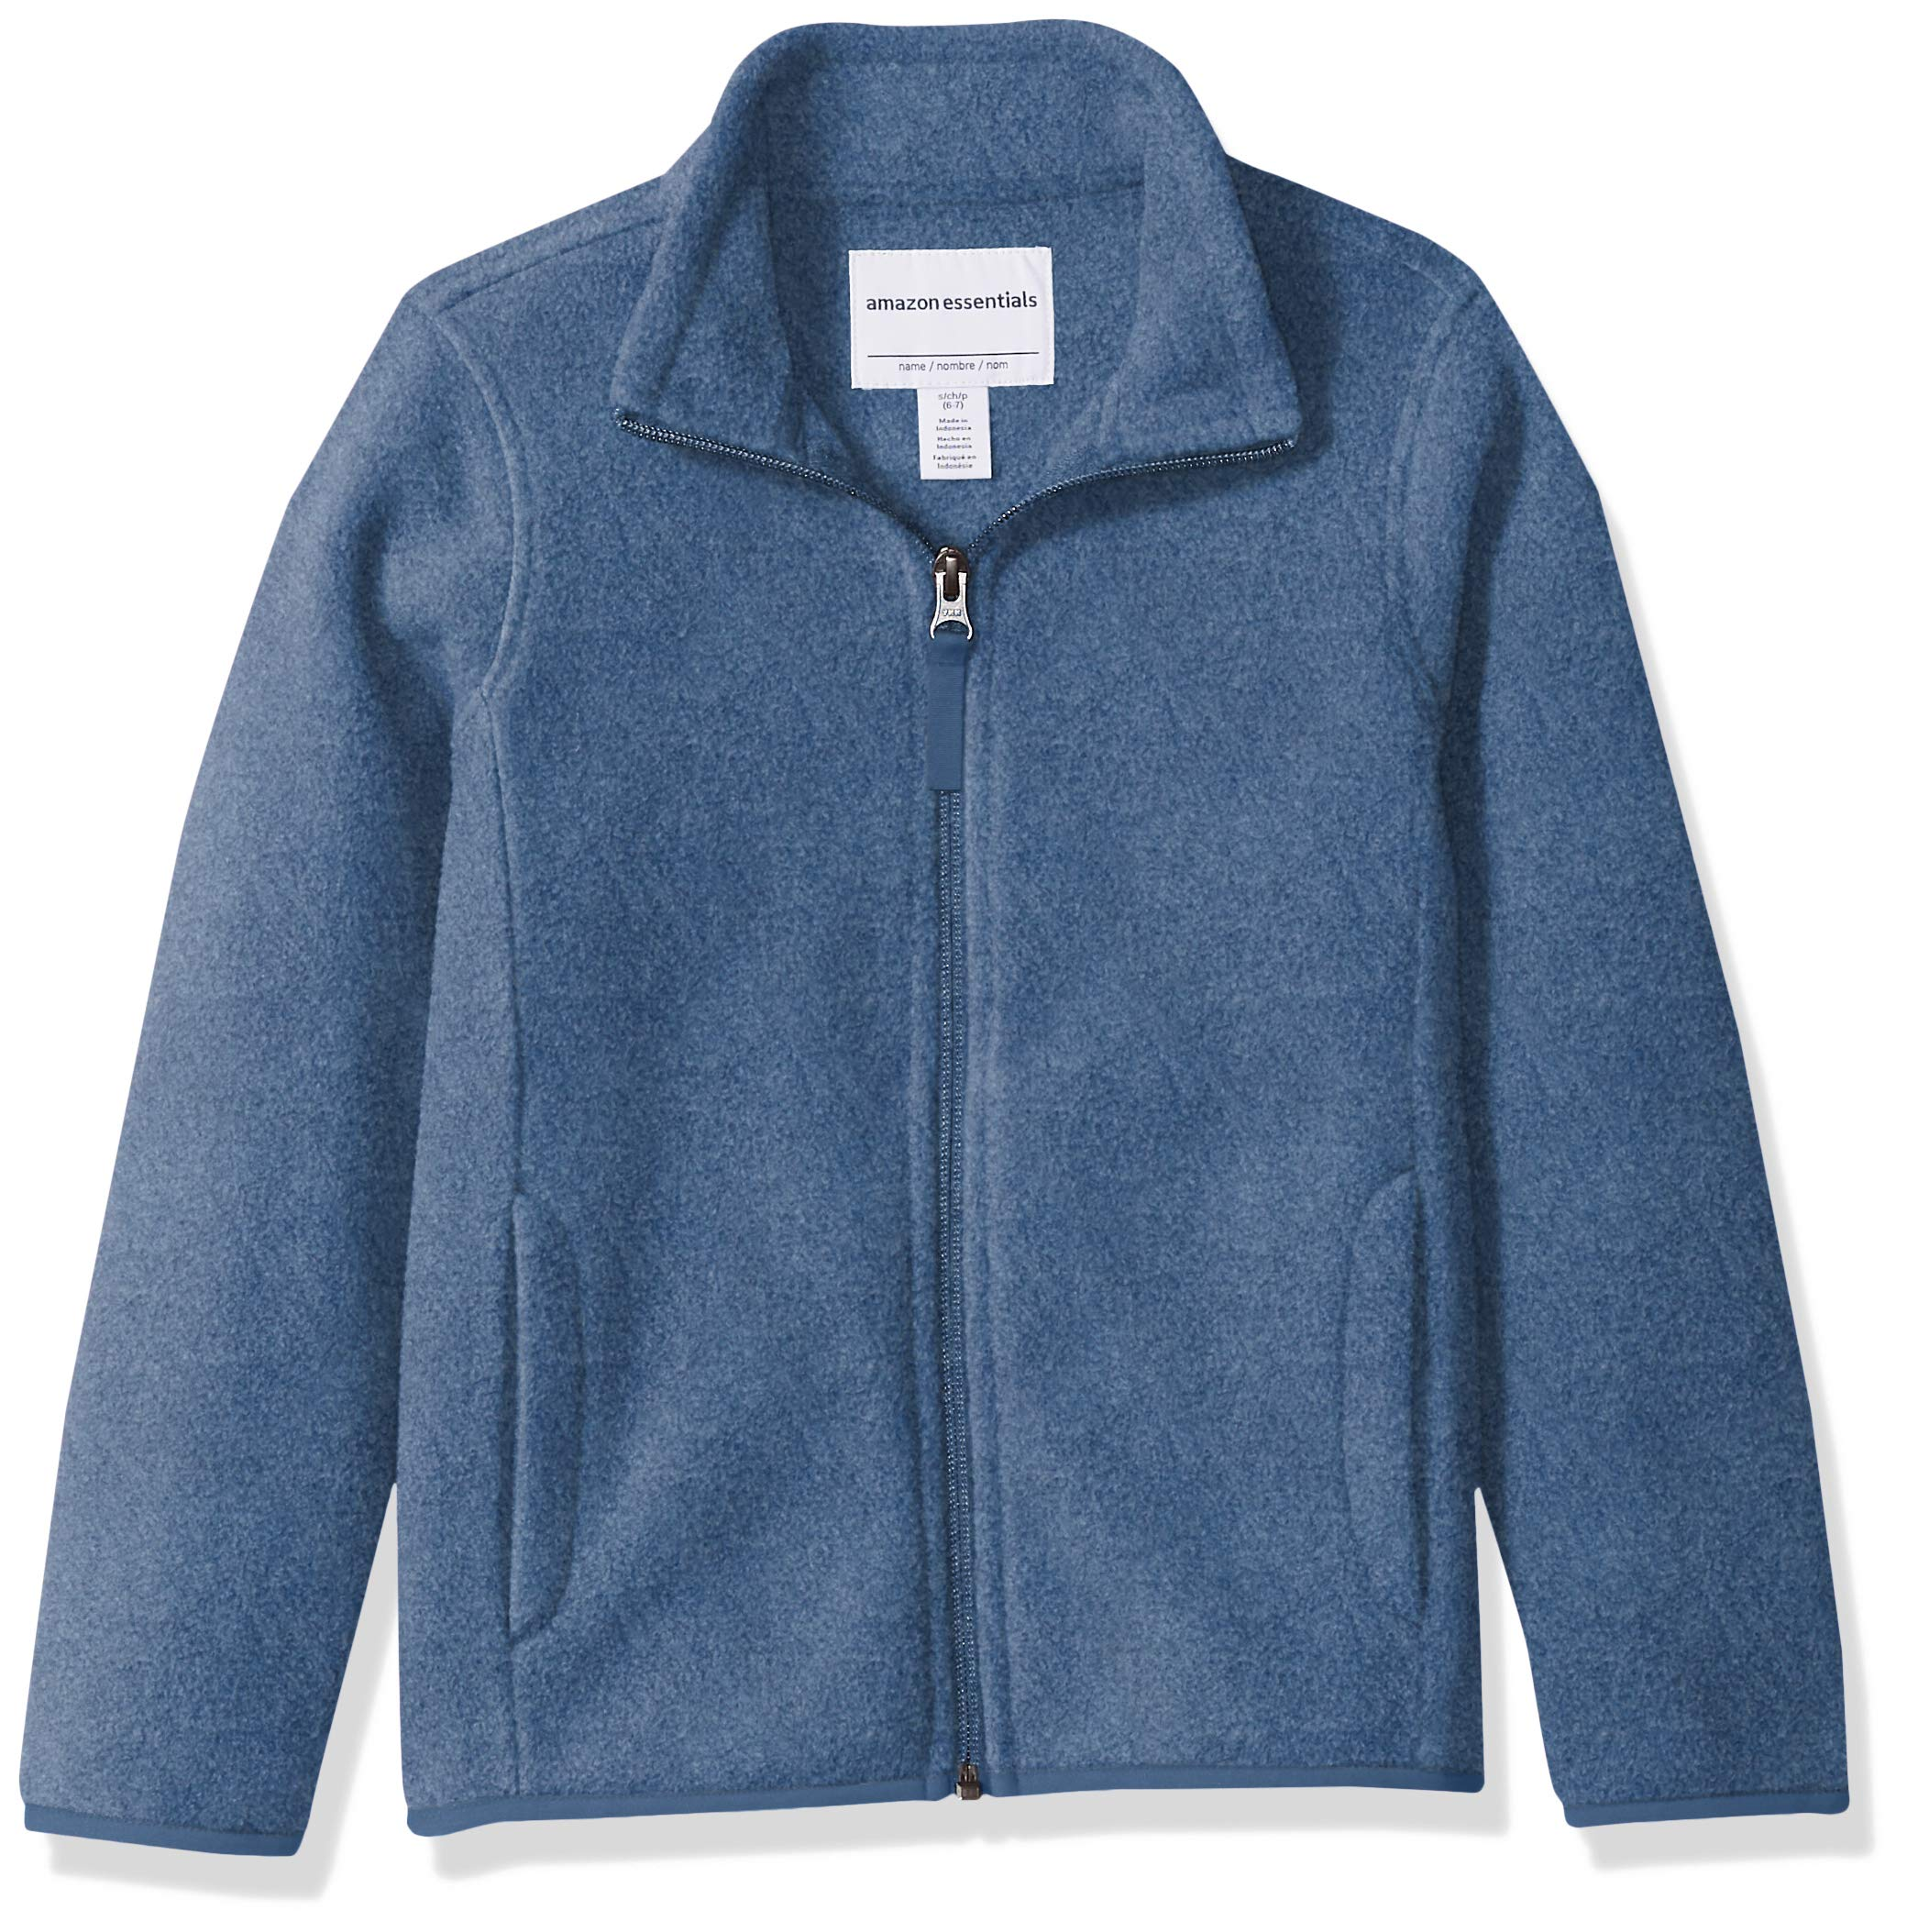 Amazon Essentials Girl's Full-Zip Polar Fleece Jacket, Blue Heather, XX-Large